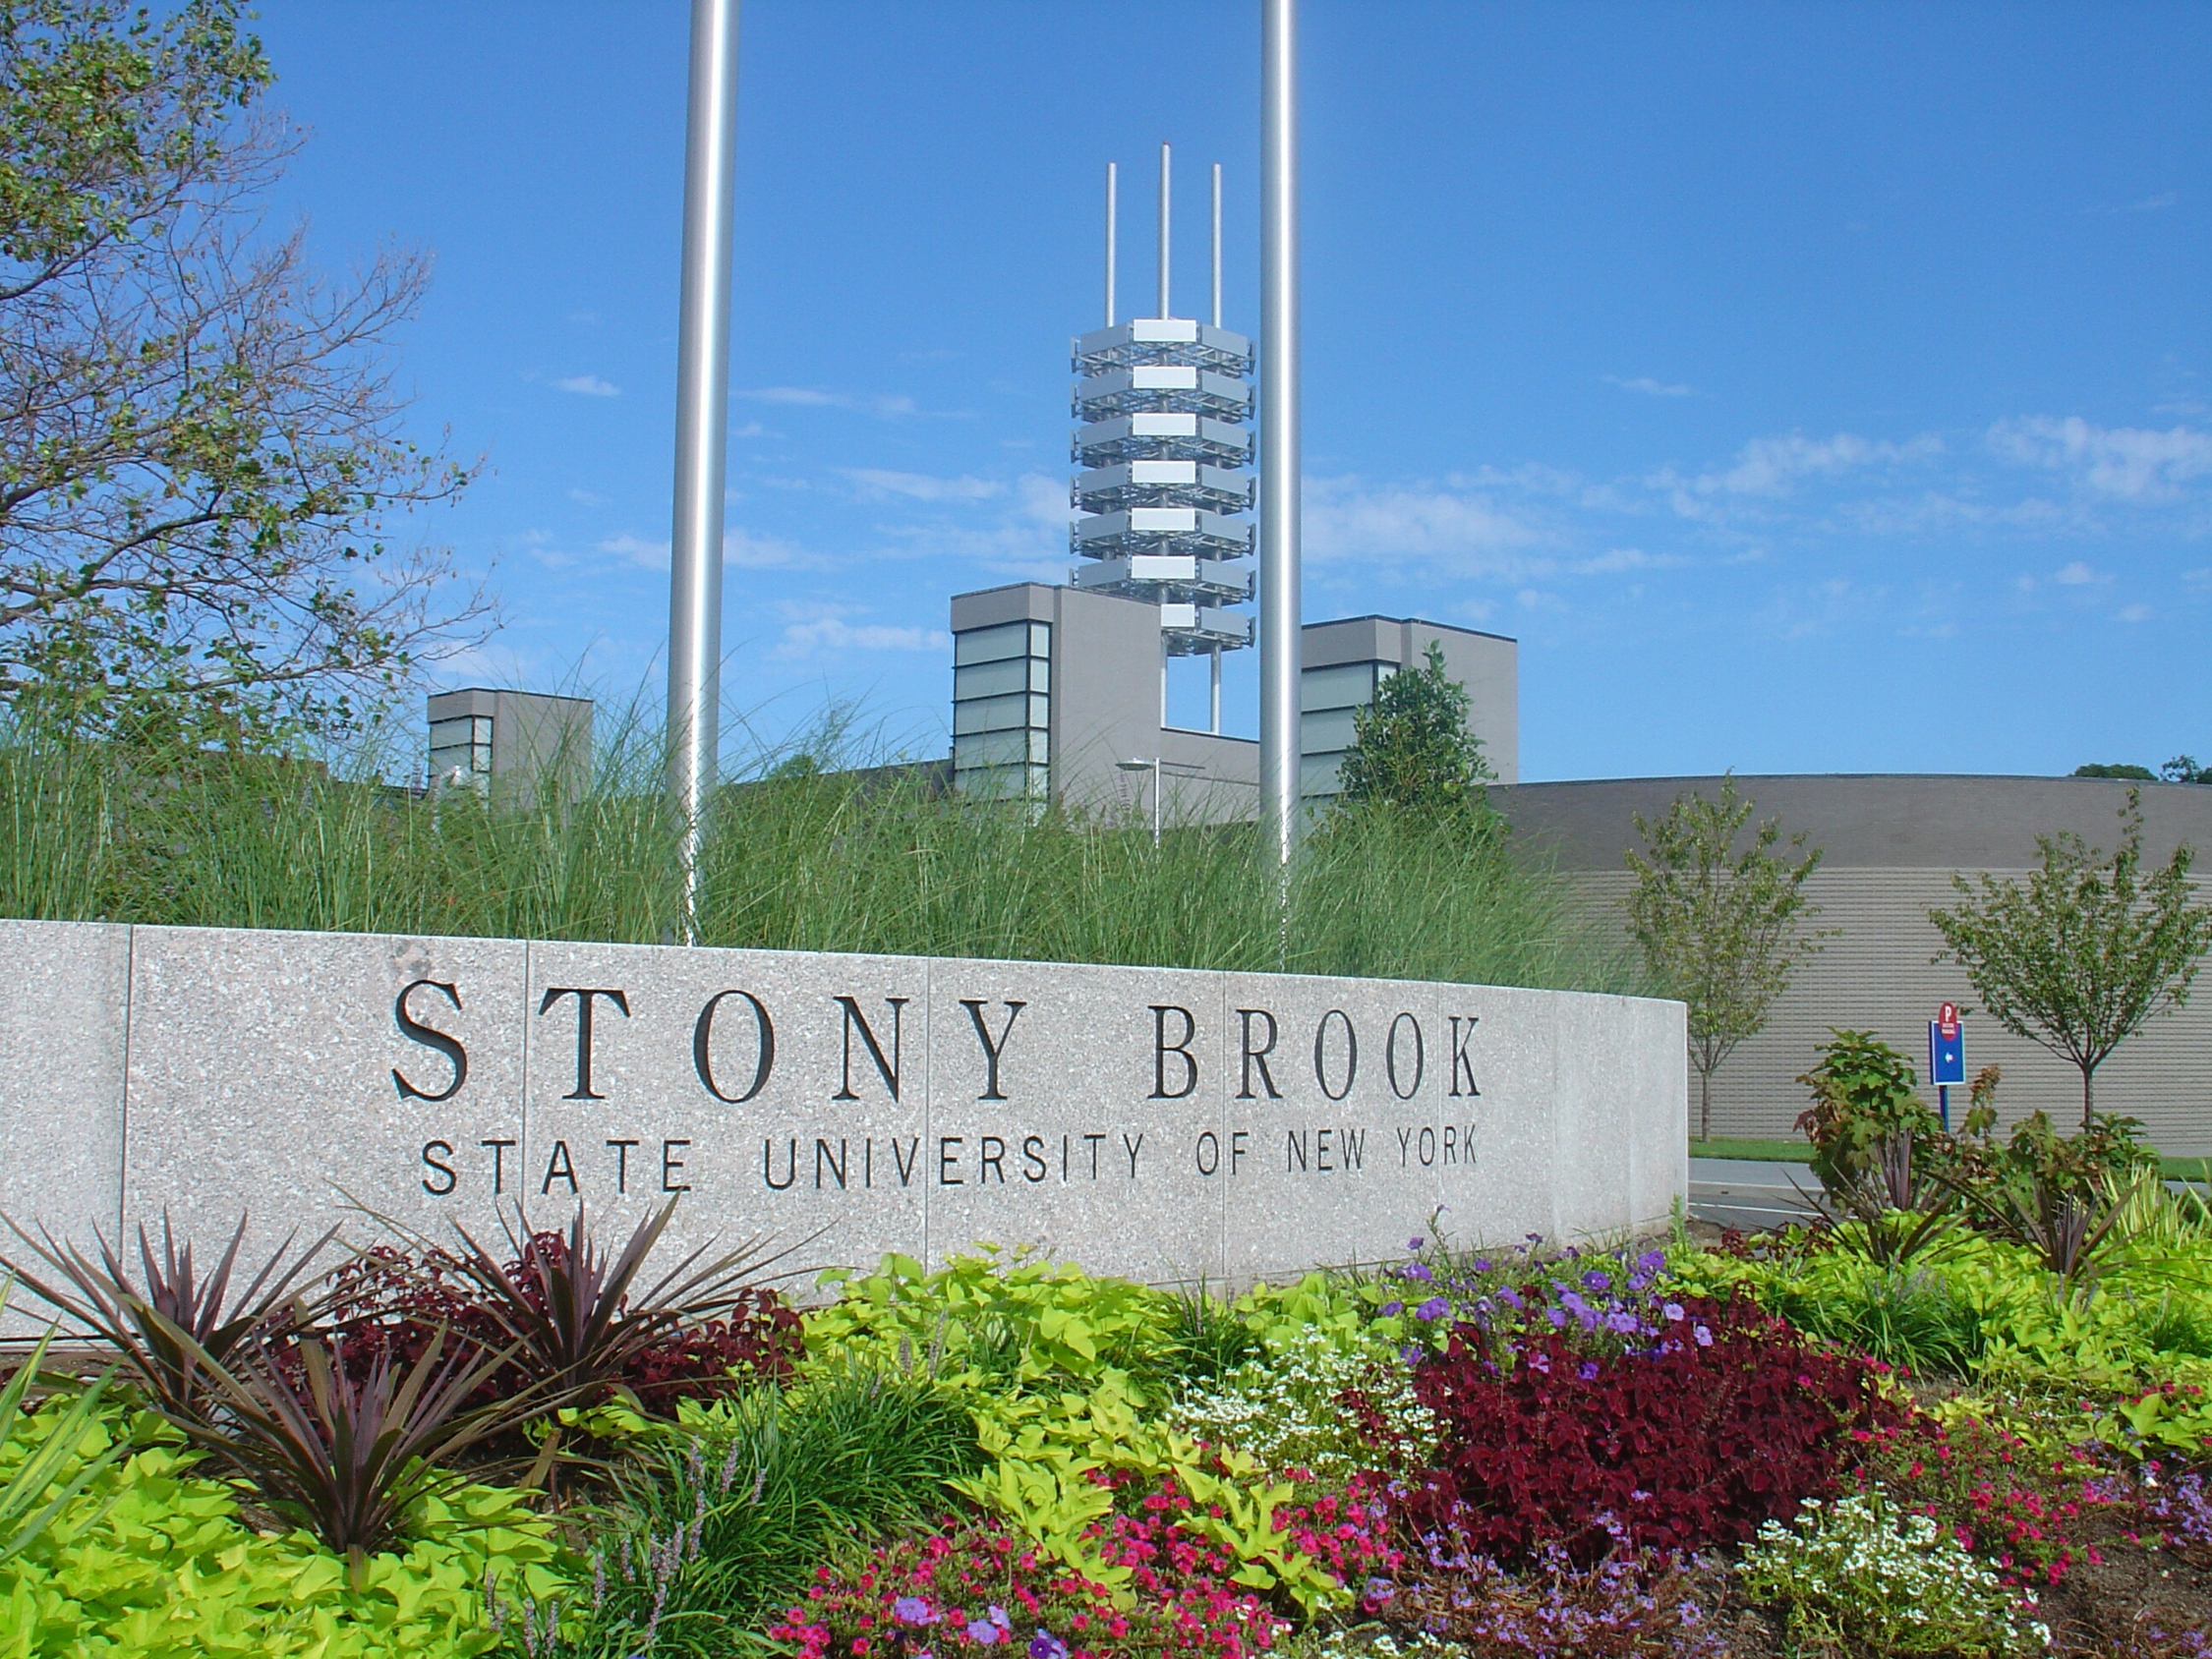 Stony brook university cafe-9770